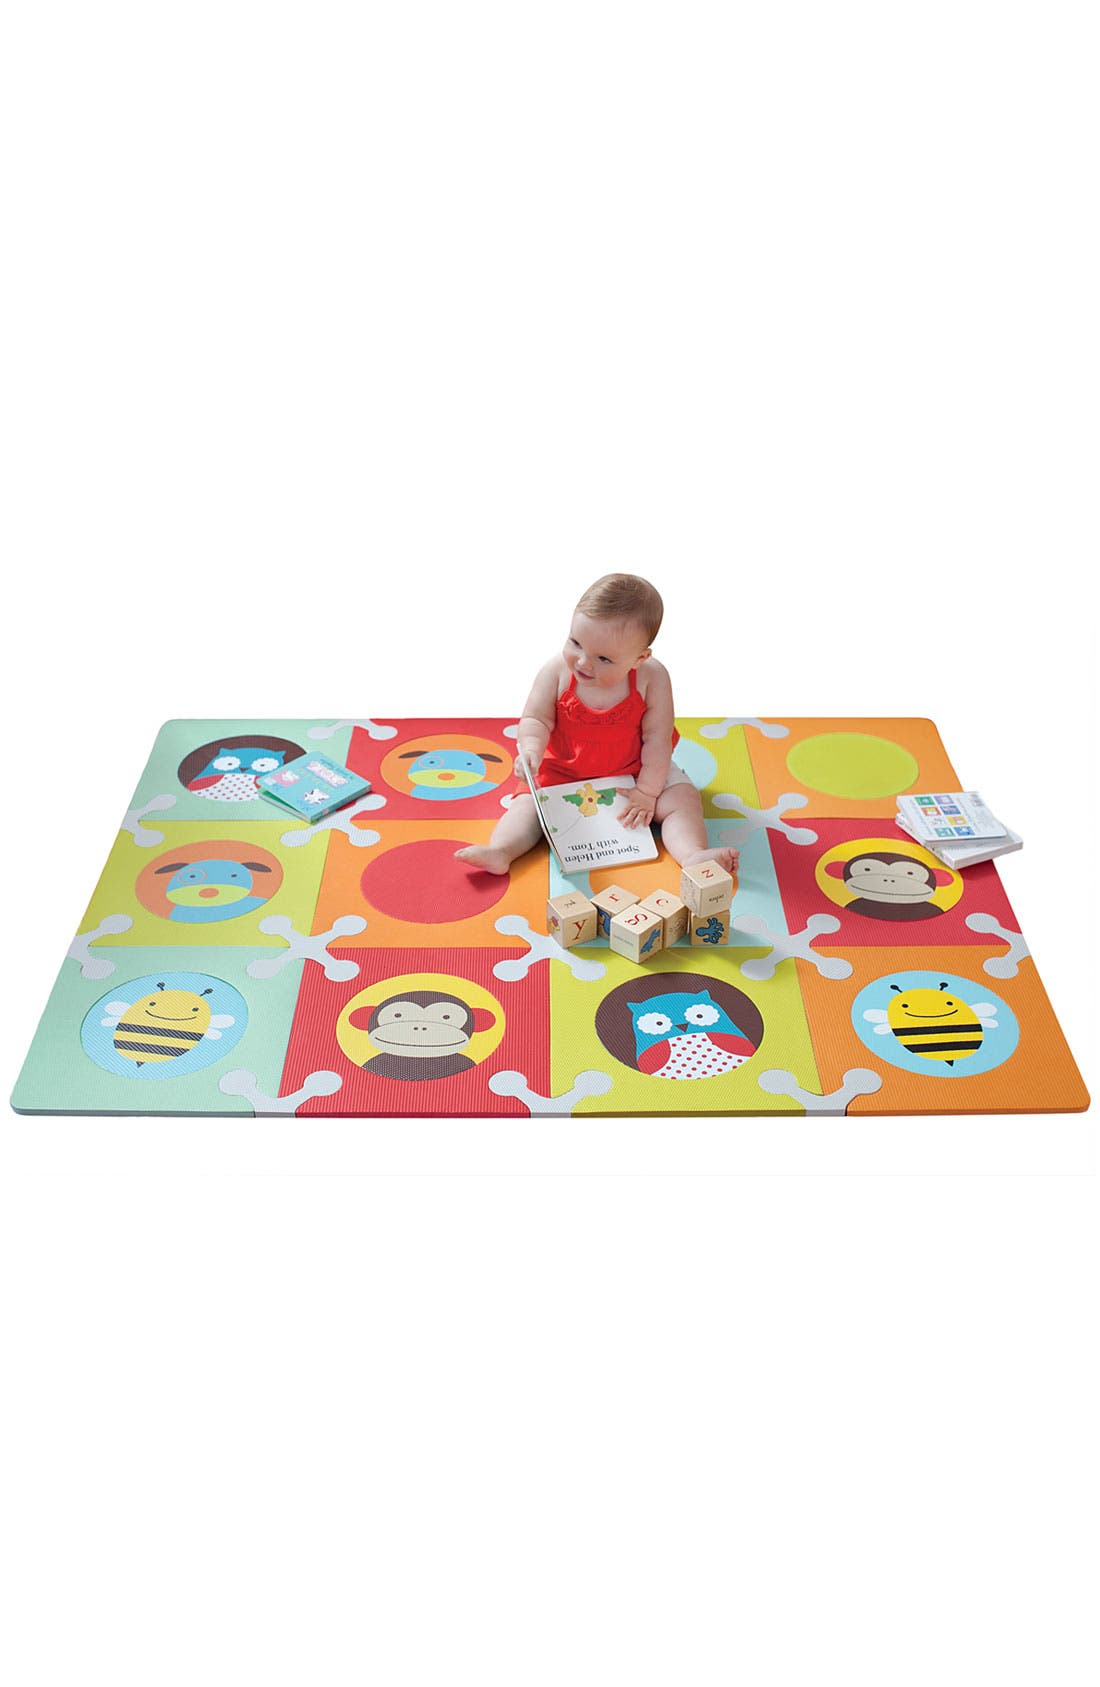 Main Image - Skip Hop 'Playspot Zoo' Foam Floor Tiles